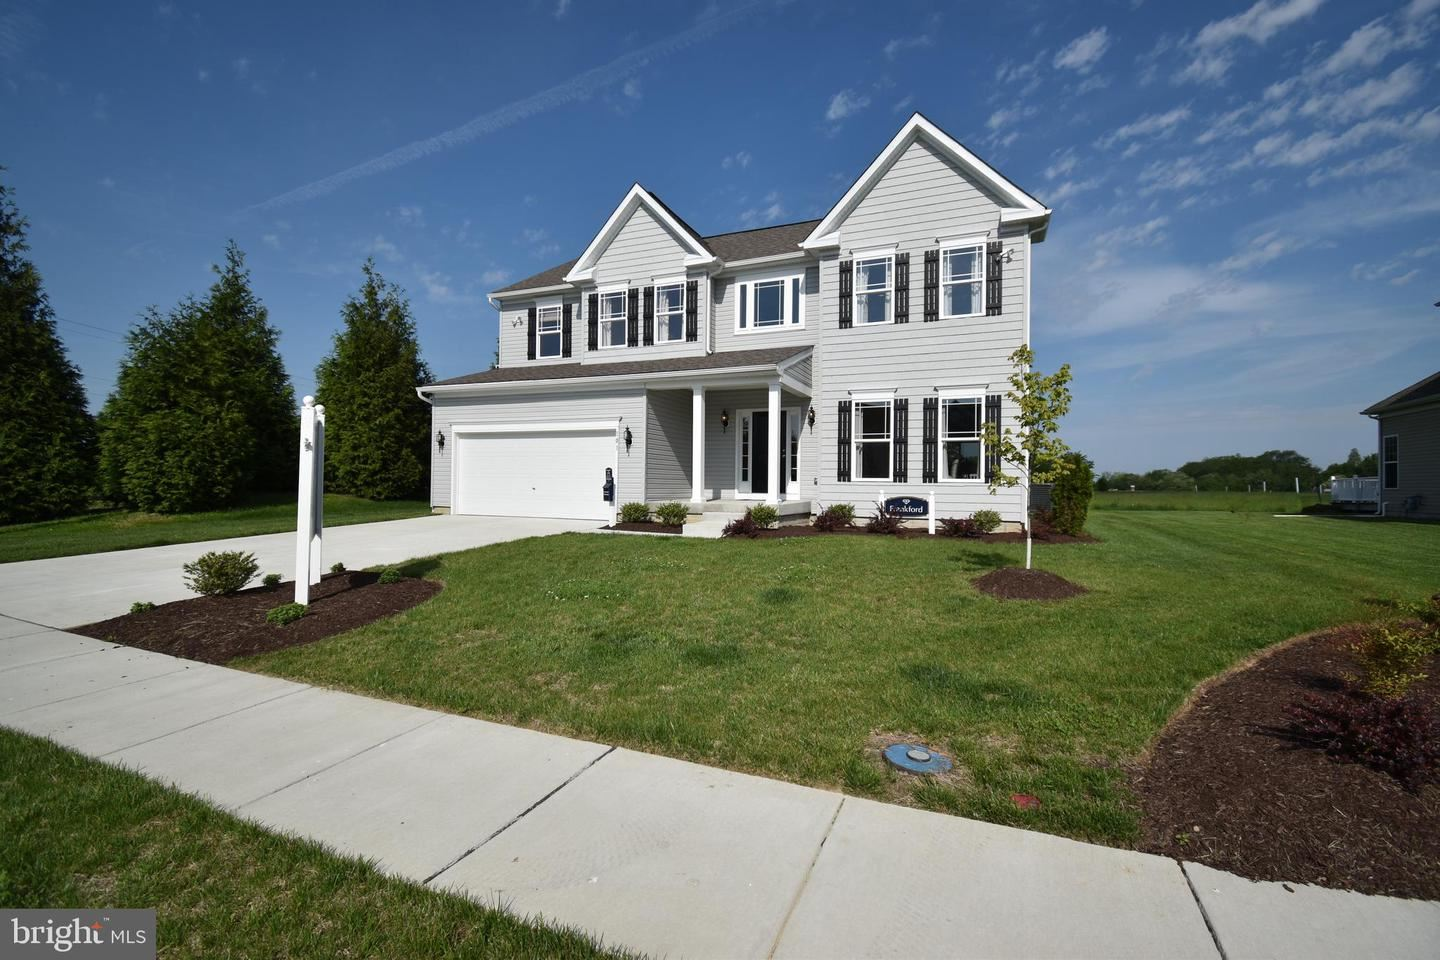 Photo of 402 REGULATOR DR SOUTH DR, CAMBRIDGE, MD 21613 (MLS # MDDO125840)